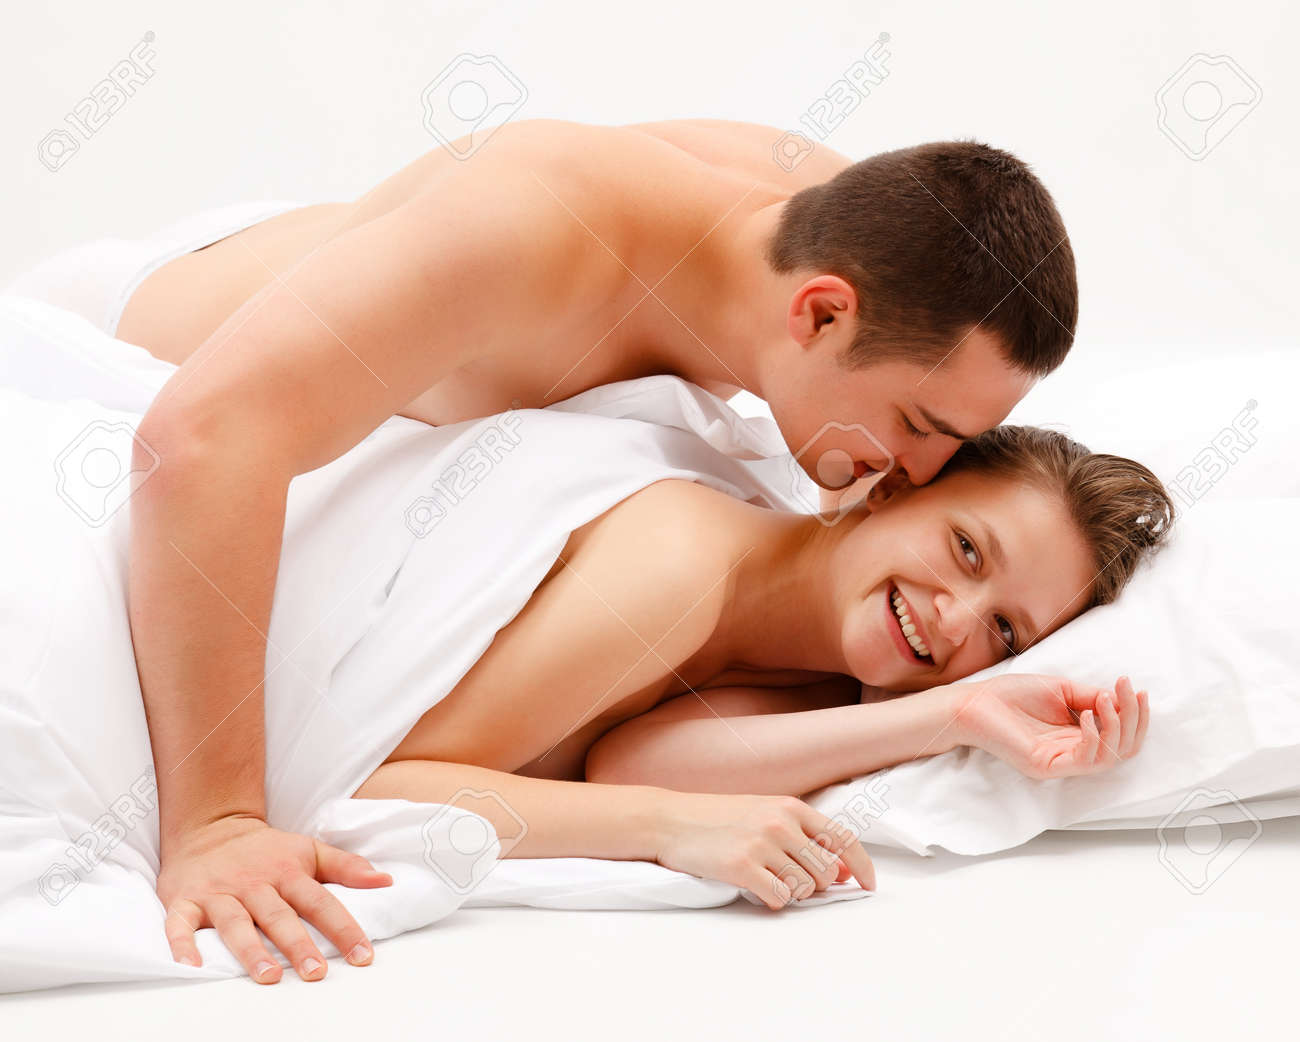 Man naked woman in bed